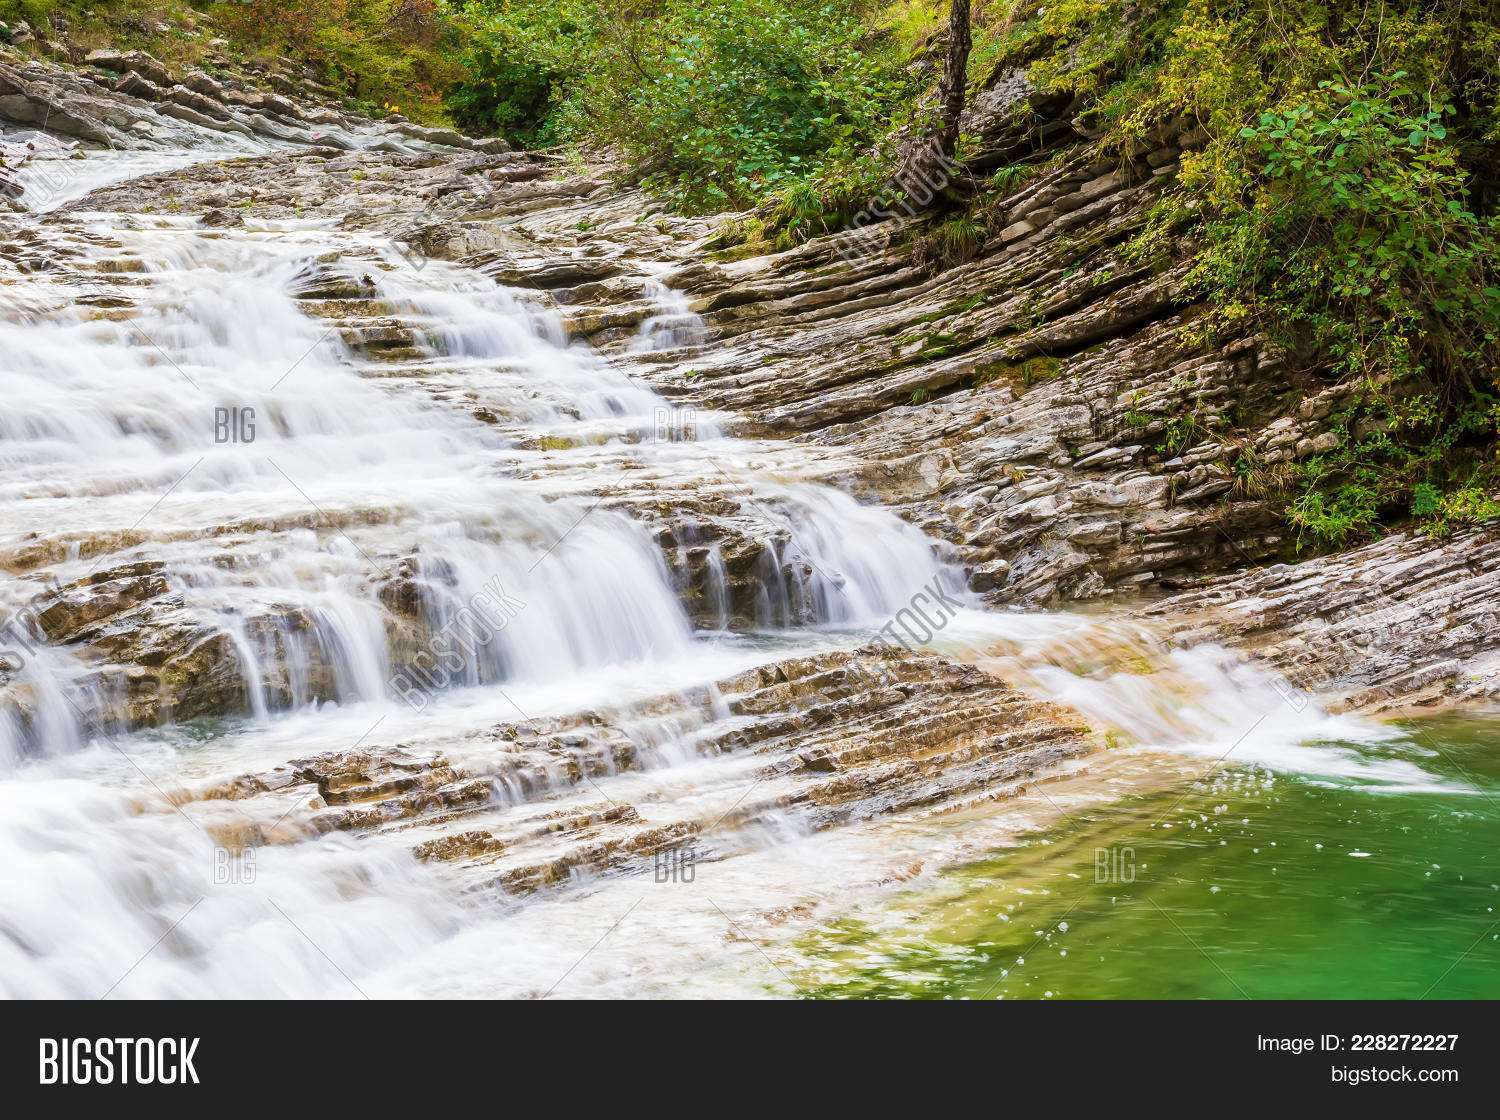 Waterfall at river PowerPoint Template - Waterfall at river ...